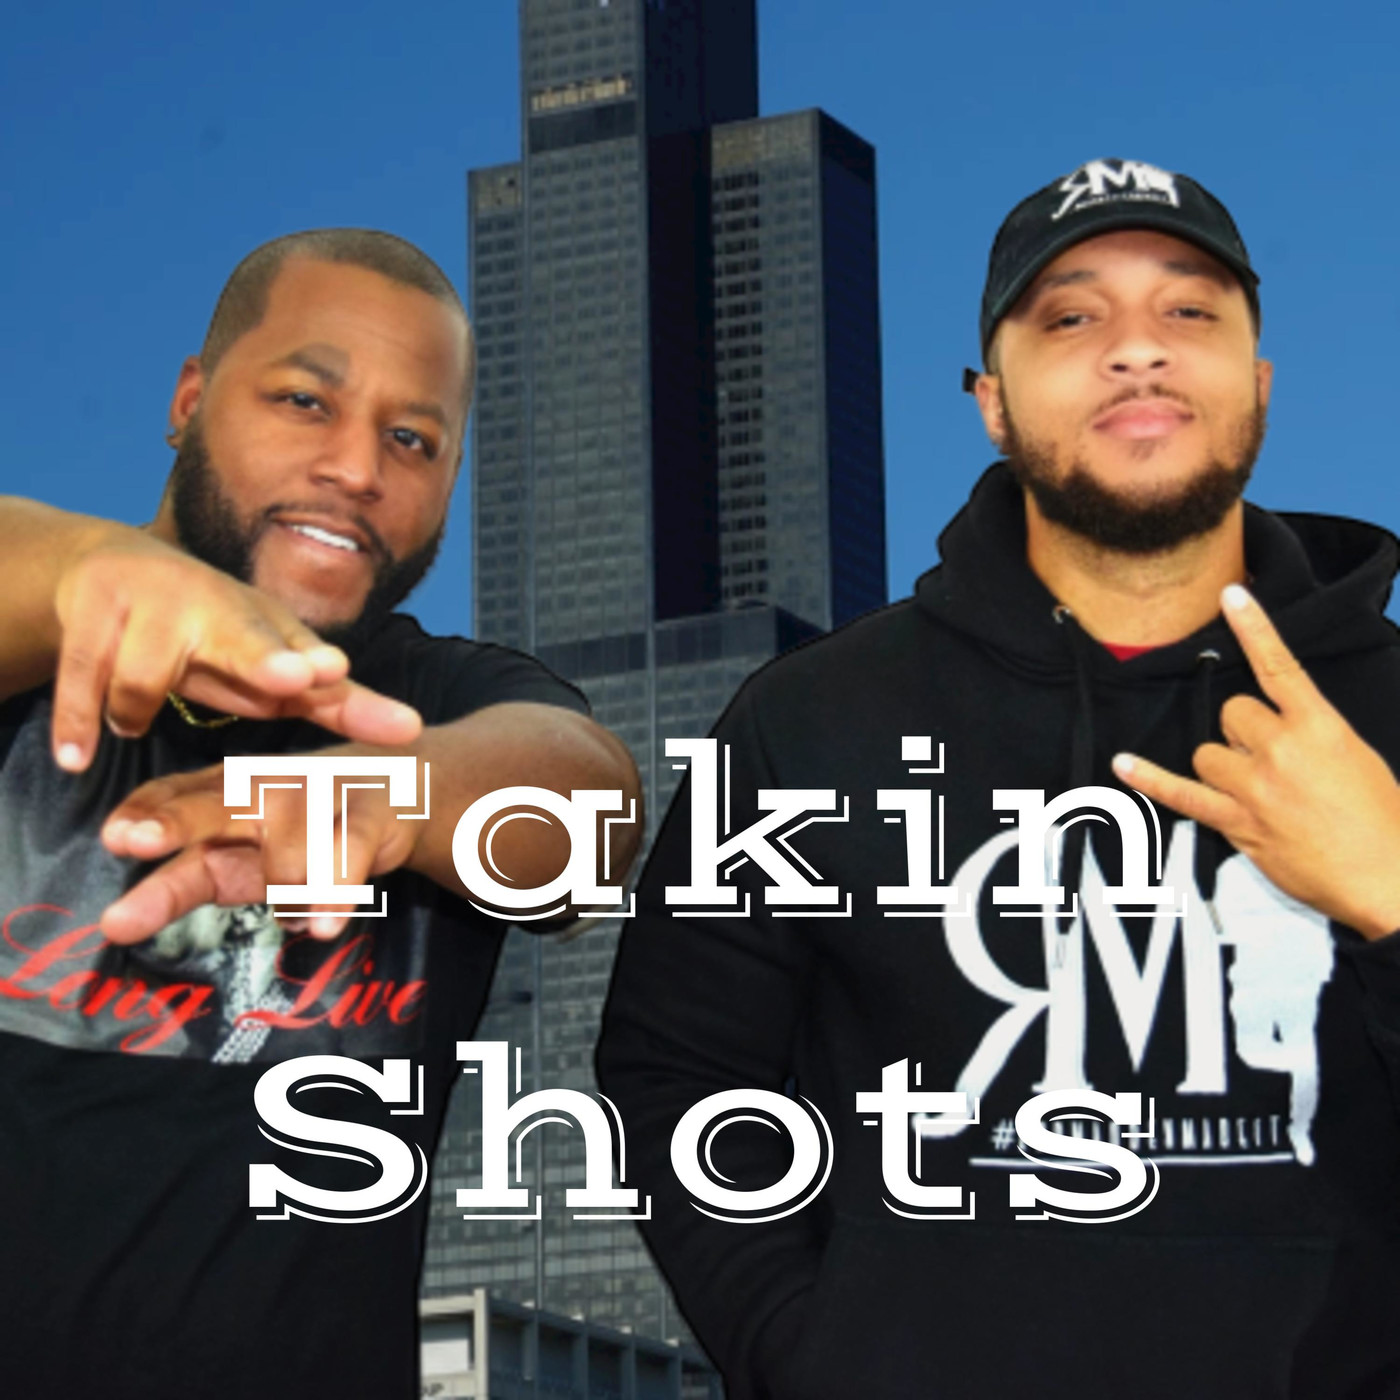 TAKIN SHOTS Ep. 48 AFTER SHOW (Nipple Clamps, Silento, John Gray, Cheating For Money, and MORE)